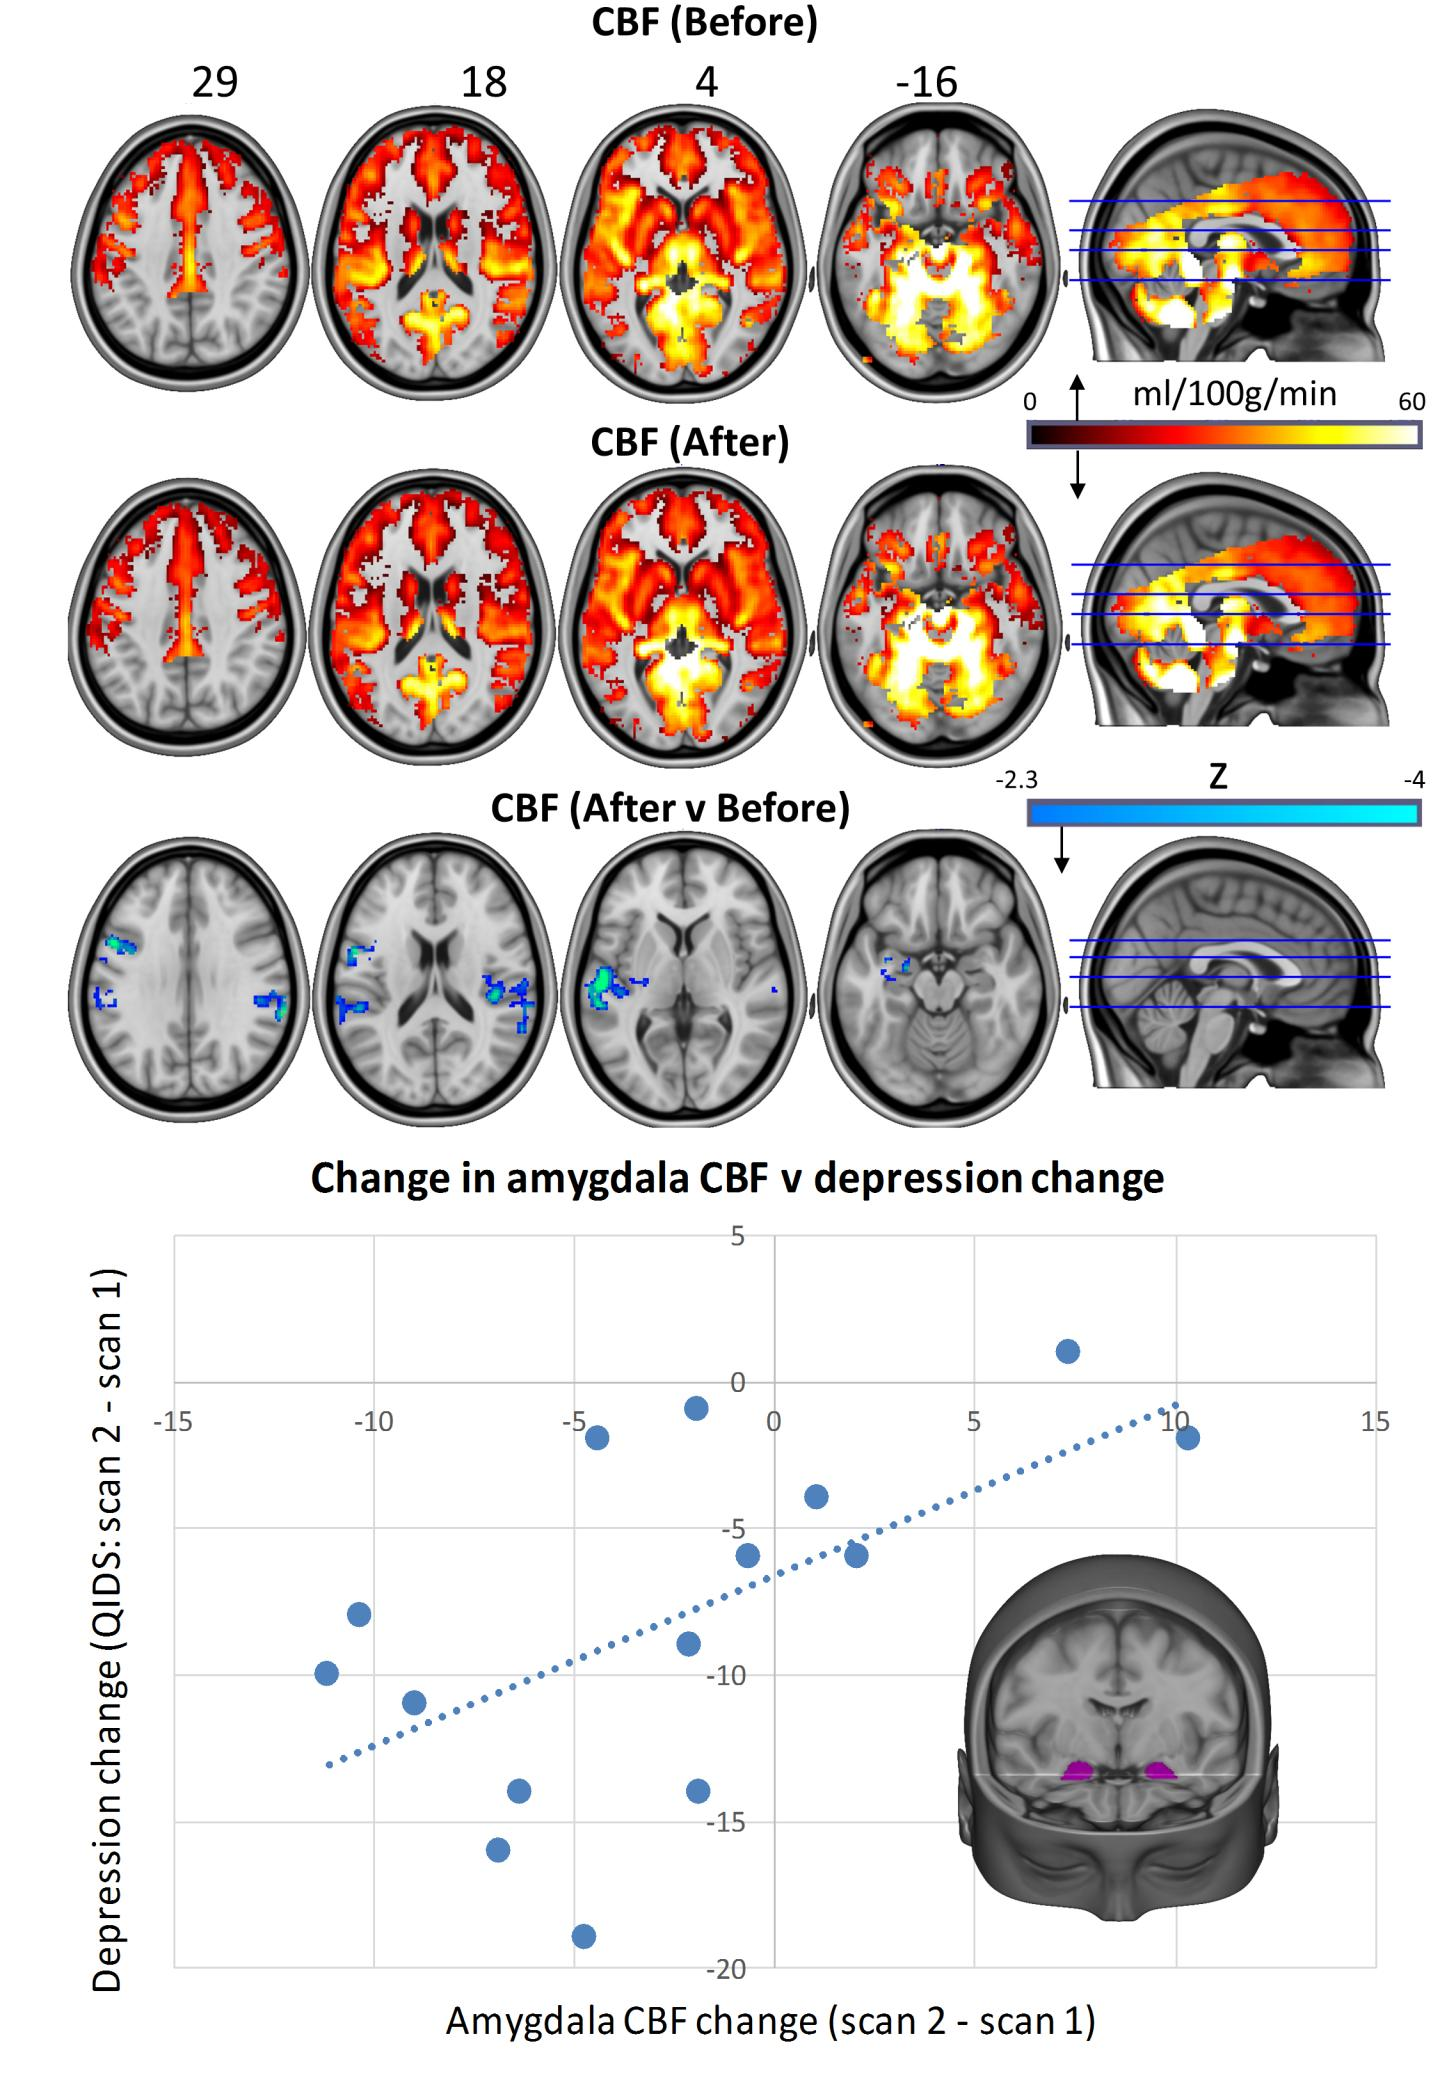 Whole-brain cerebral blood flow maps for baseline versus one-day post-treatment, plus the difference map (cluster-corrected, p < 0.05, n = 16). Correlation chart shows post-treatment changes in bilateral amygdala cerebral blood flow versus changes in depressive symptoms (r = 0.59, p = 0.01). One patient failed to complete the scan 2 QIDS-SR16 rating, reducing the sample size to n = 15 for the correlation analysis. In all of the images, the left of the brain is shown on the left. [Carhart Harris et al., Scientific Reports 2017]